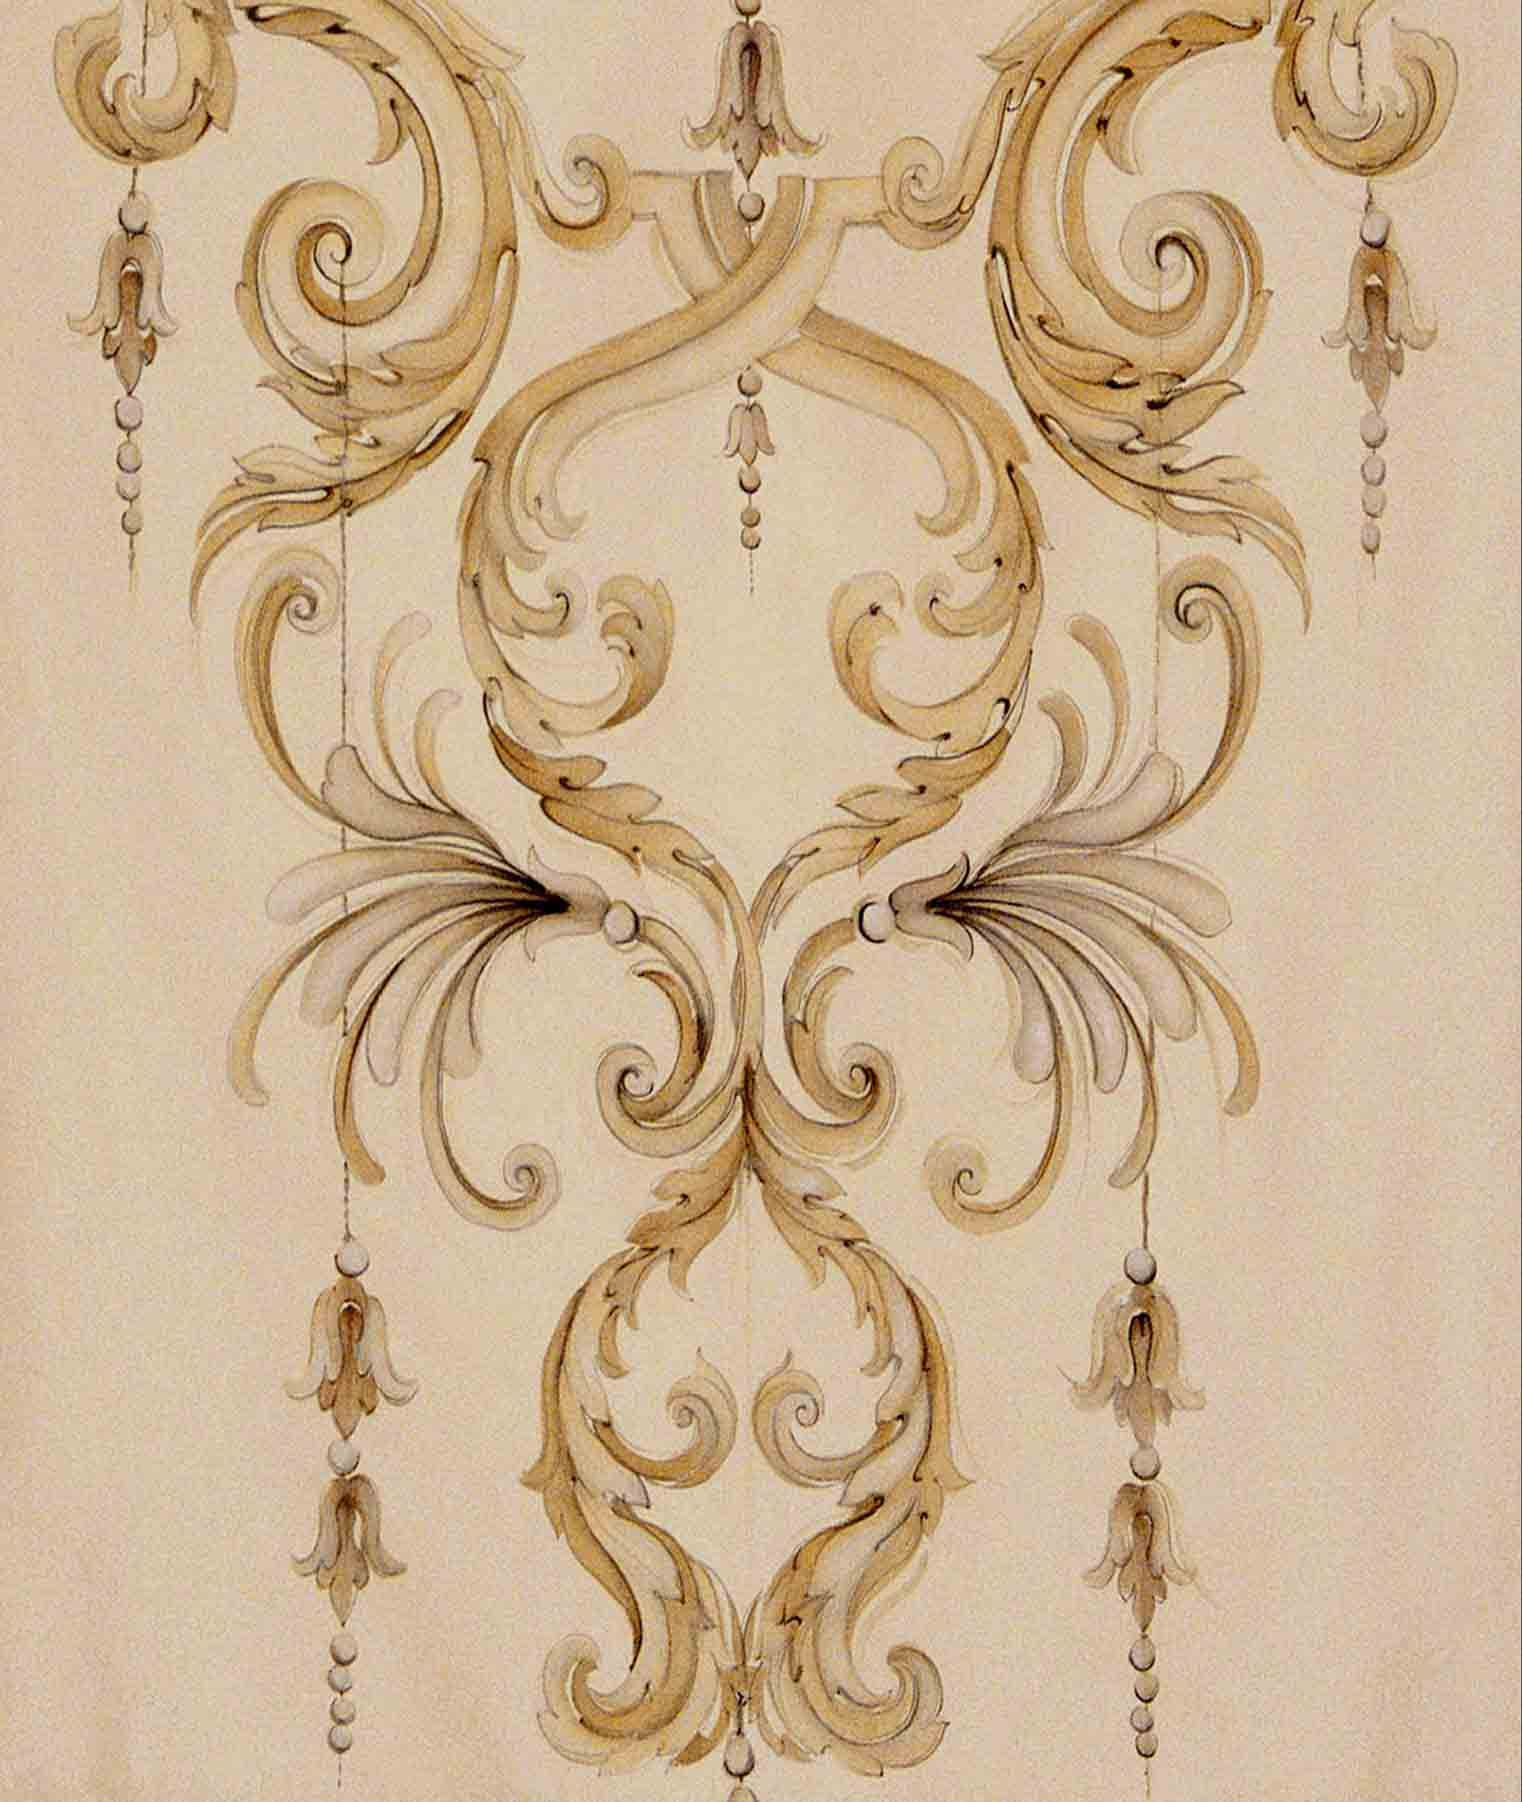 baroque arte cortina pinterest arabesque motif arabesque et rocaille. Black Bedroom Furniture Sets. Home Design Ideas